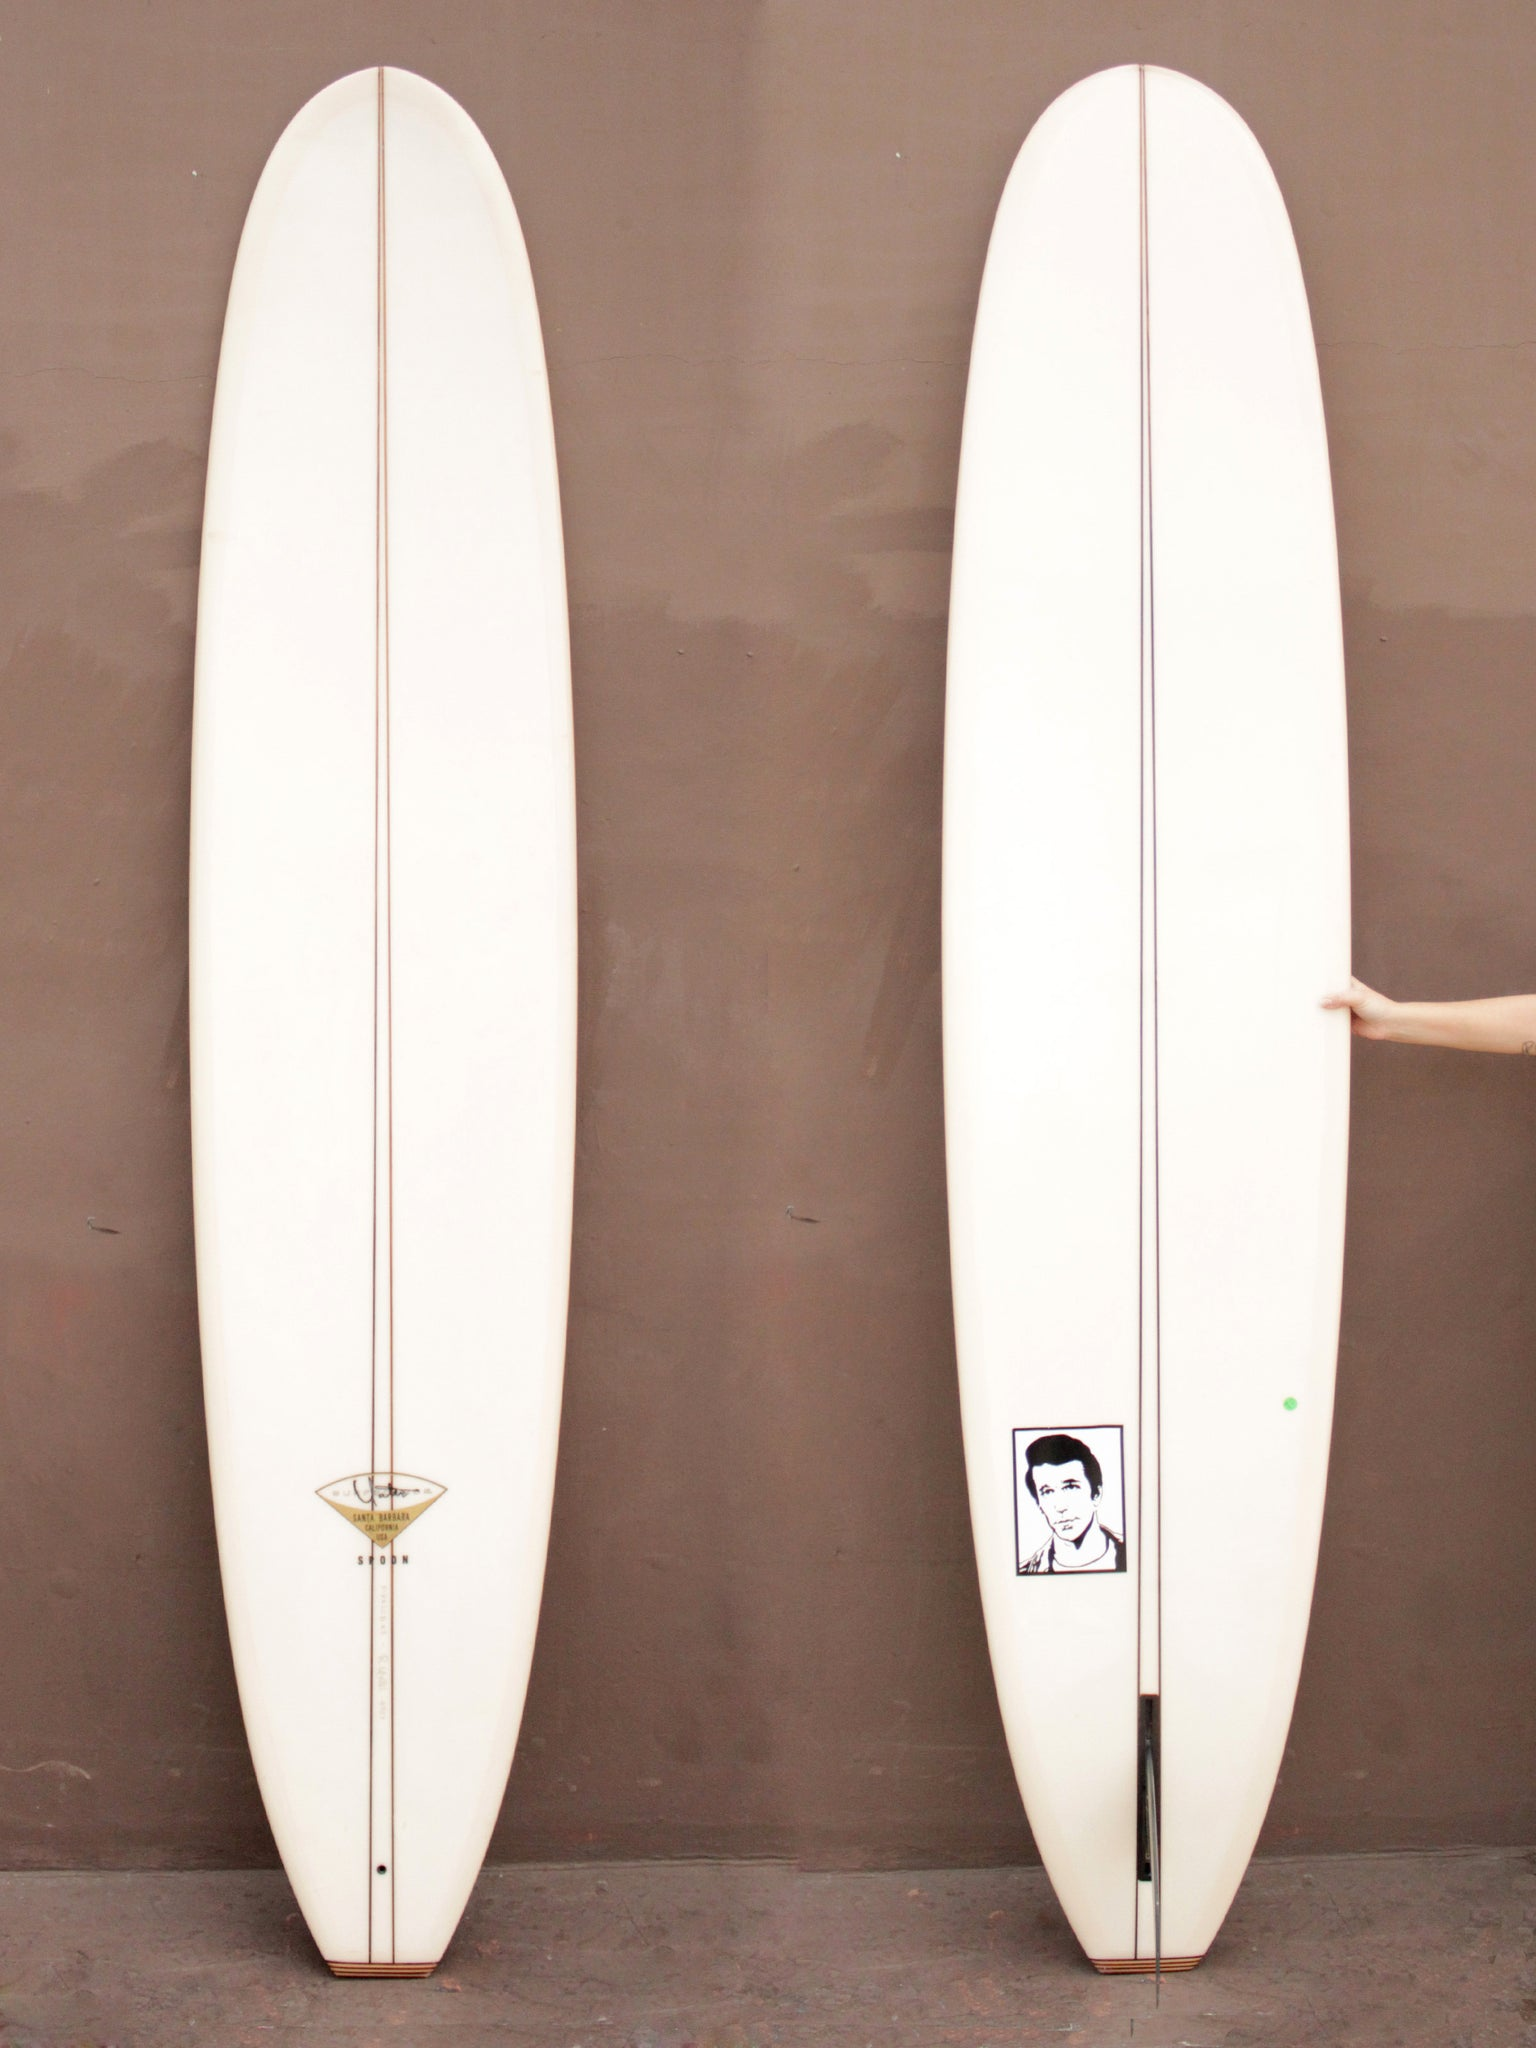 9'3 Yater Spoon (Used)